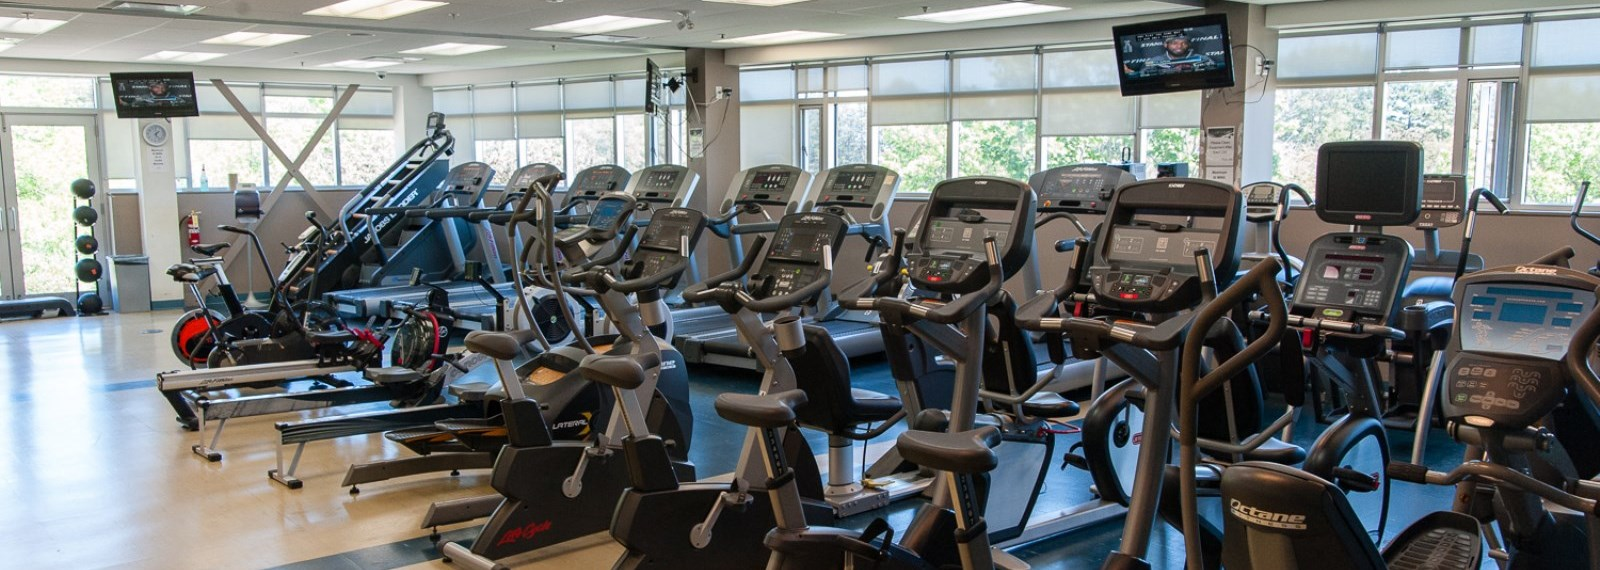 Cardio equipment in a gym